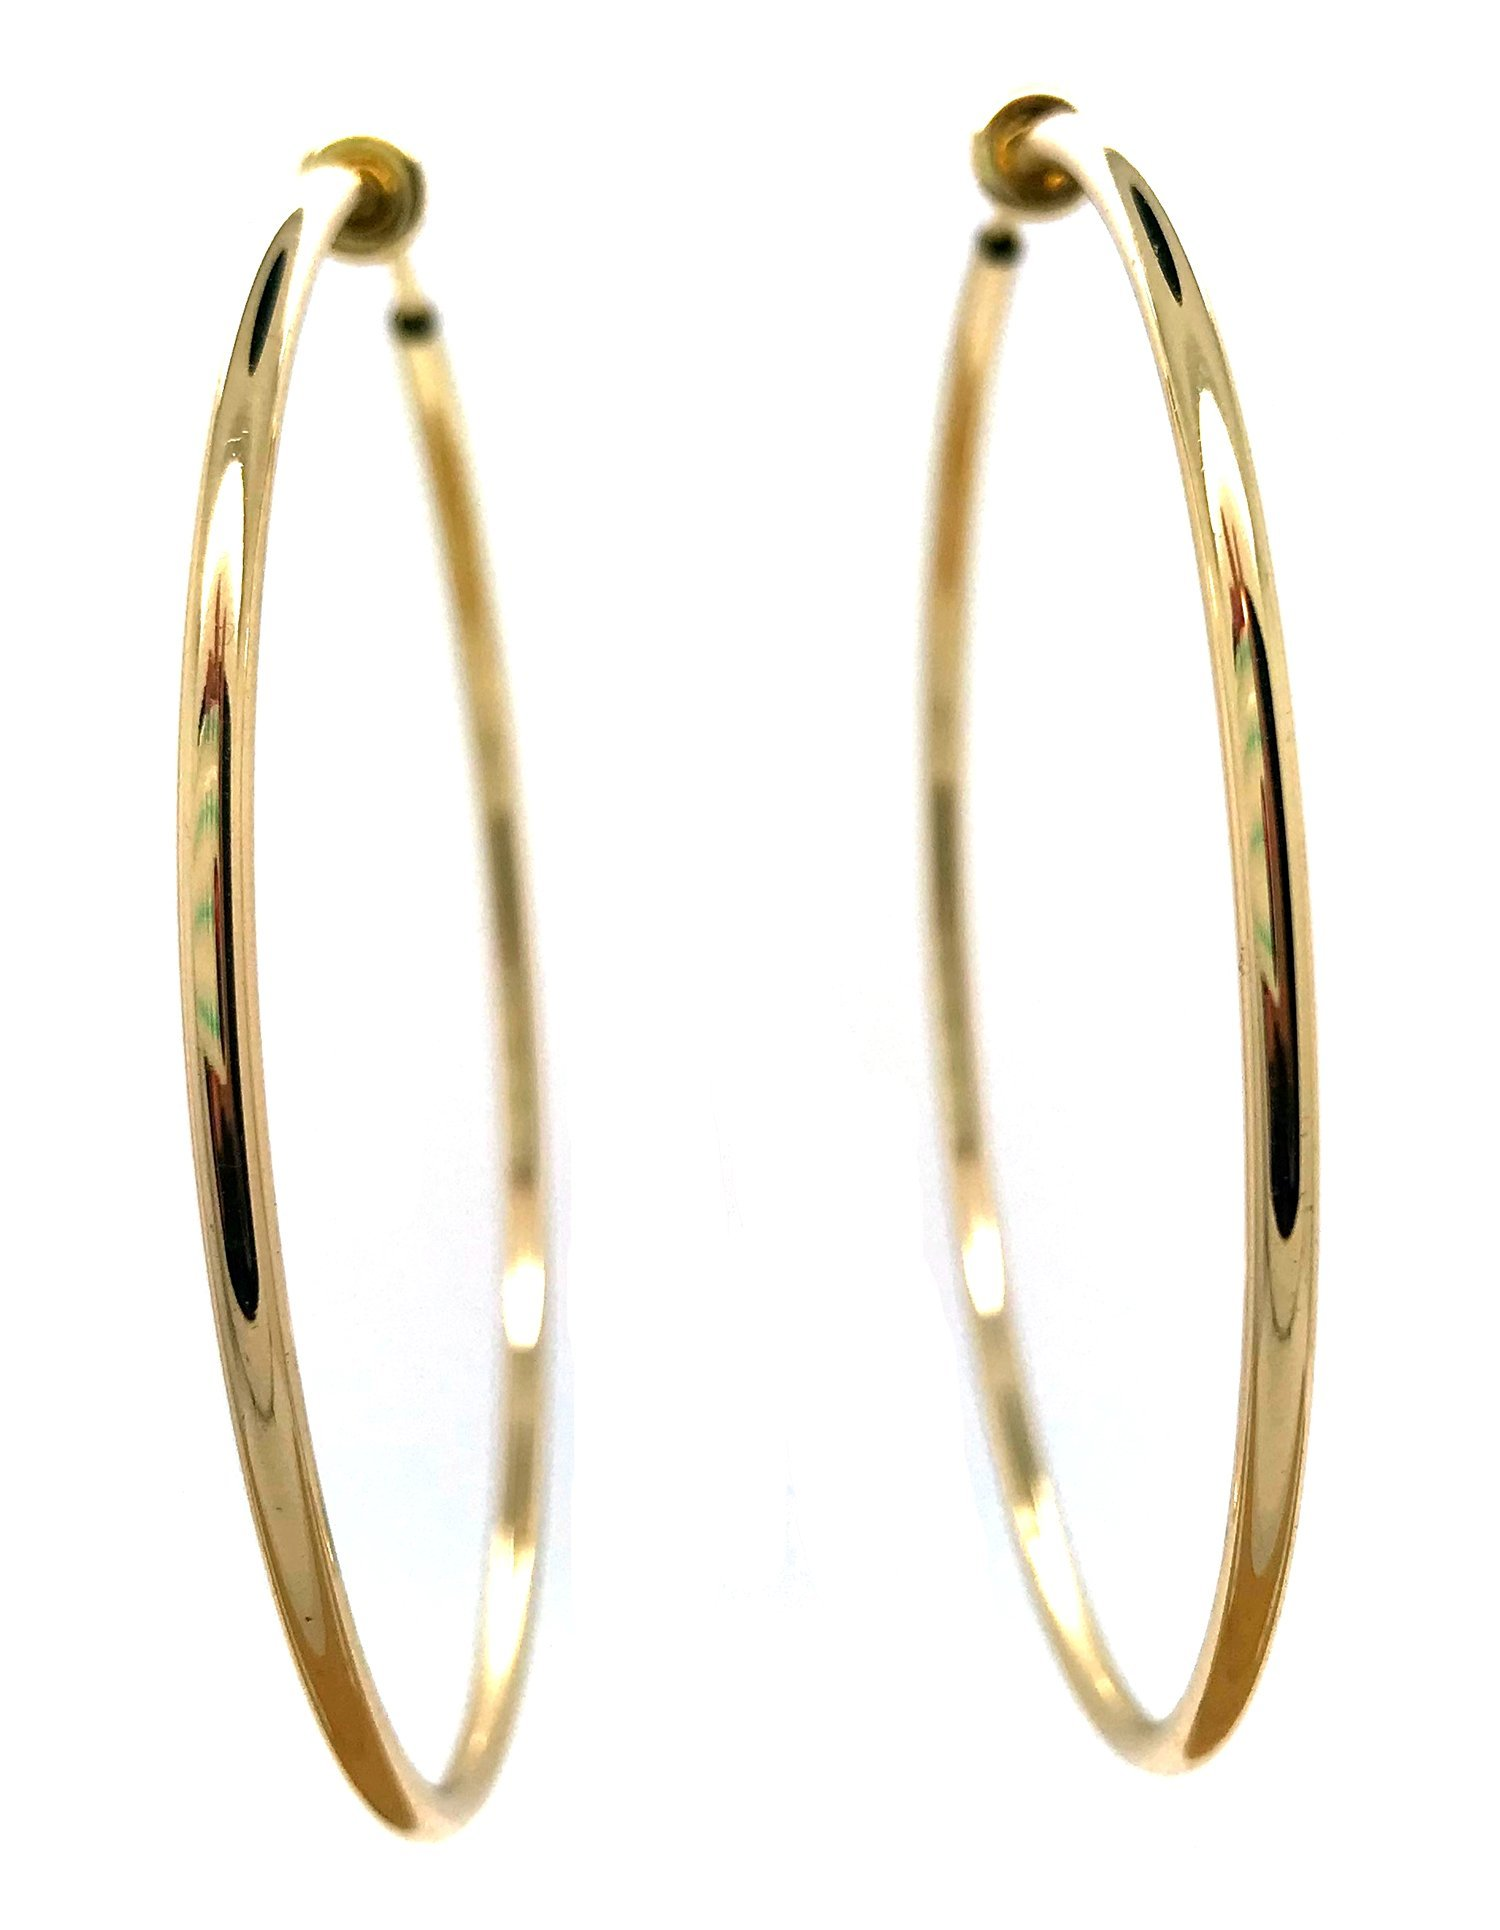 Gold Plated Brass Spring Hoops Earrings Clip On-Small, Medium & Large Hoops for Women & Girls, Unpierced (Gold XXL)